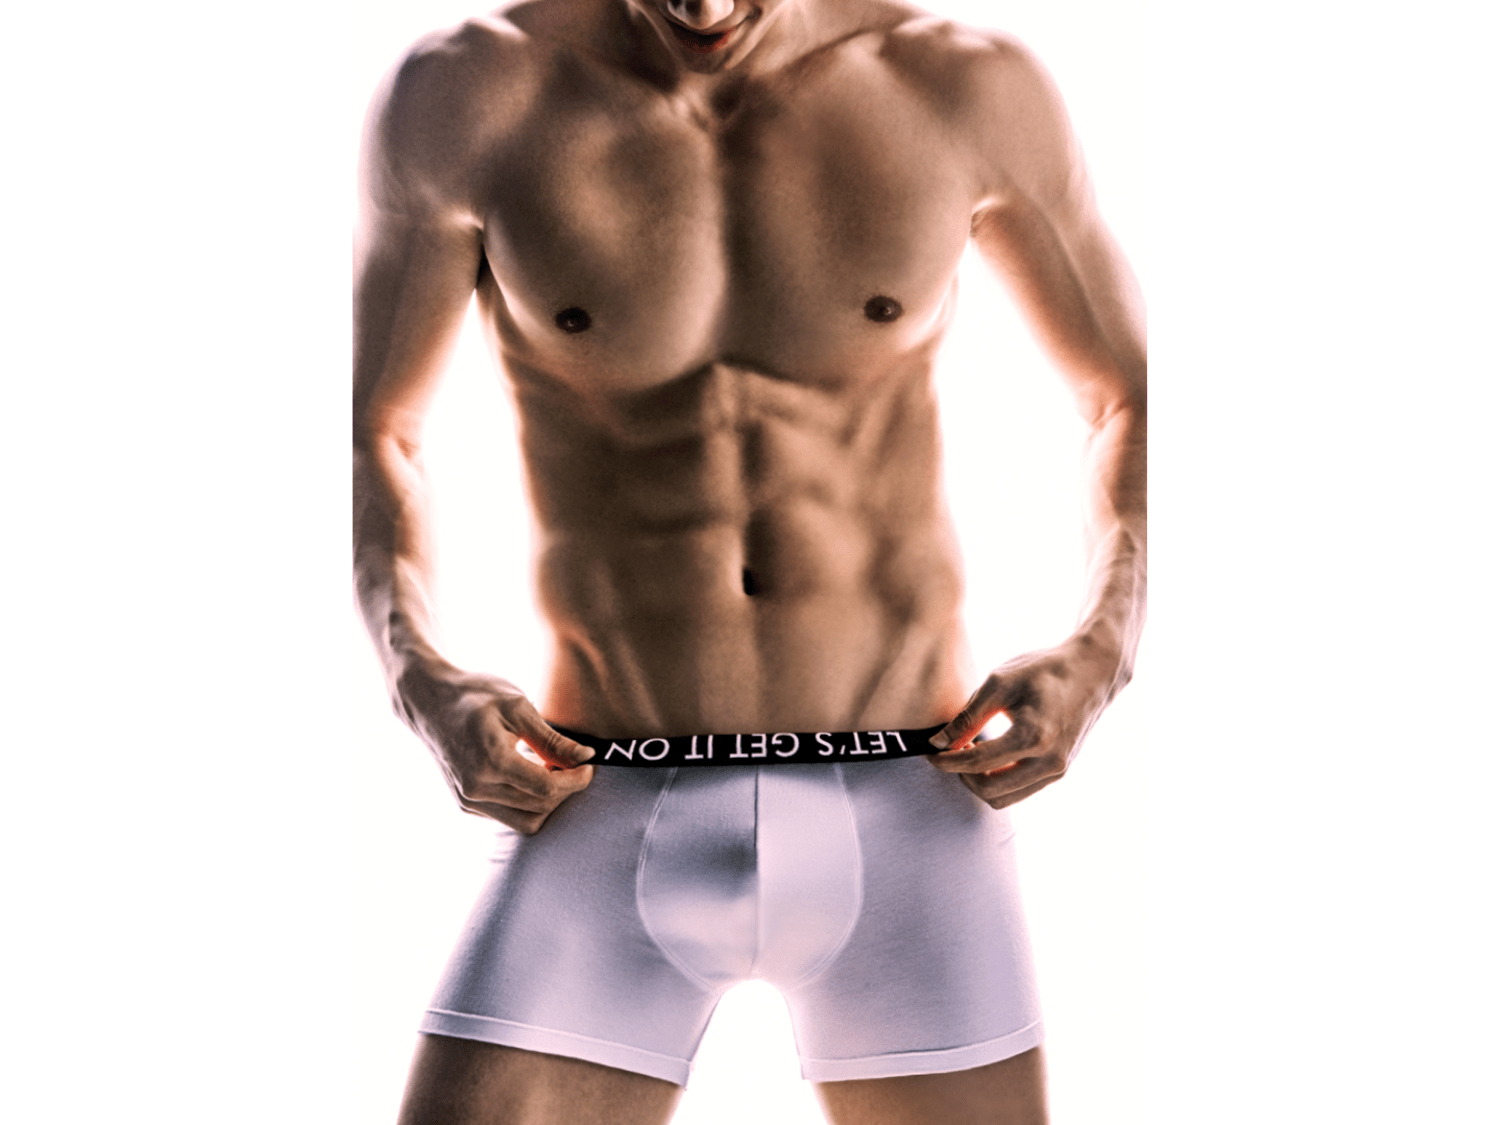 What Men Want: The Underwear Edition